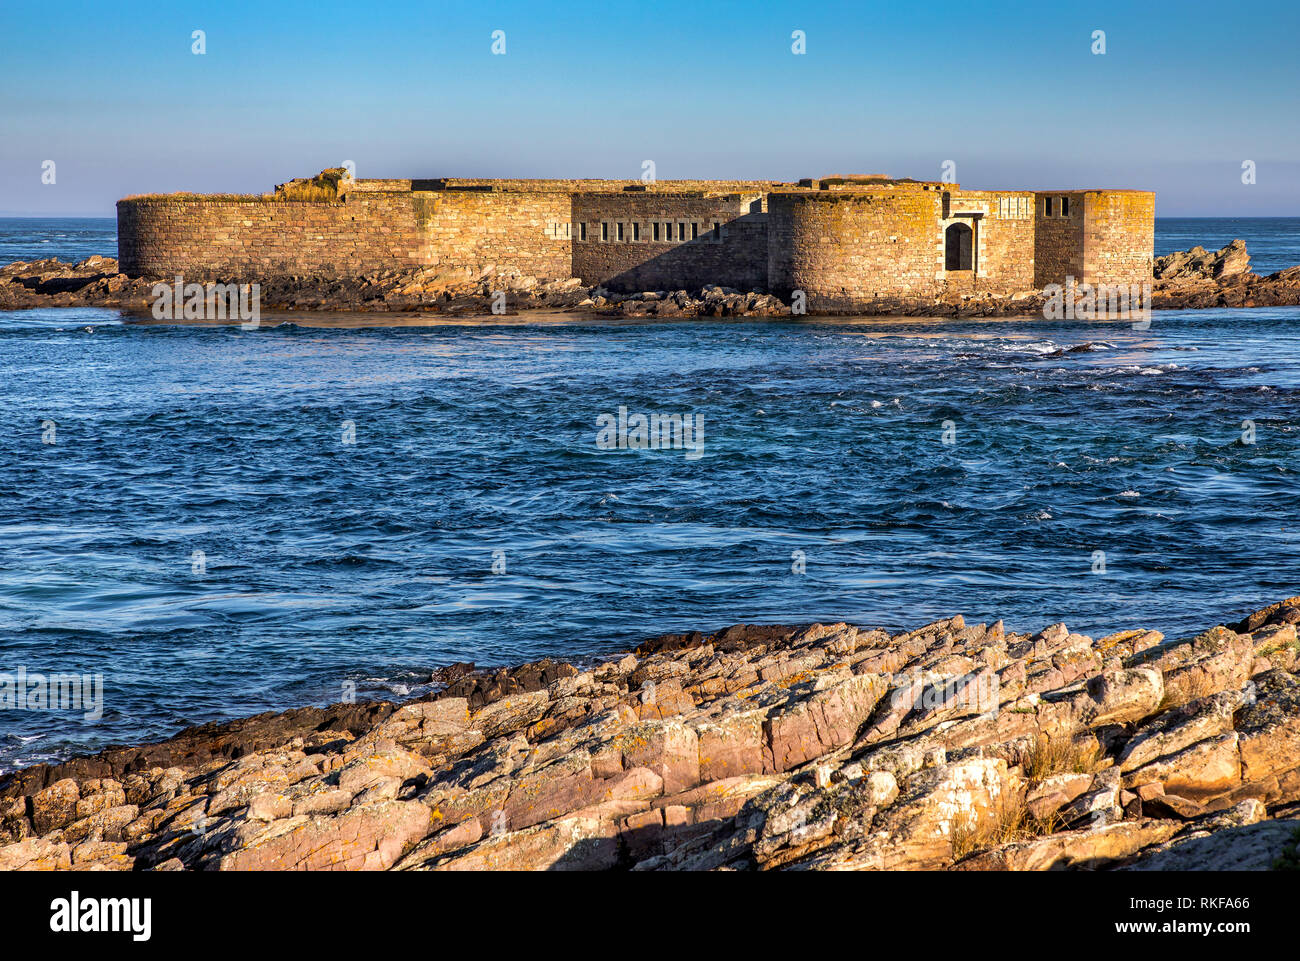 View of Fort Houmet Herbe' from La Petite Folie on the Alderney mainland. - Stock Image